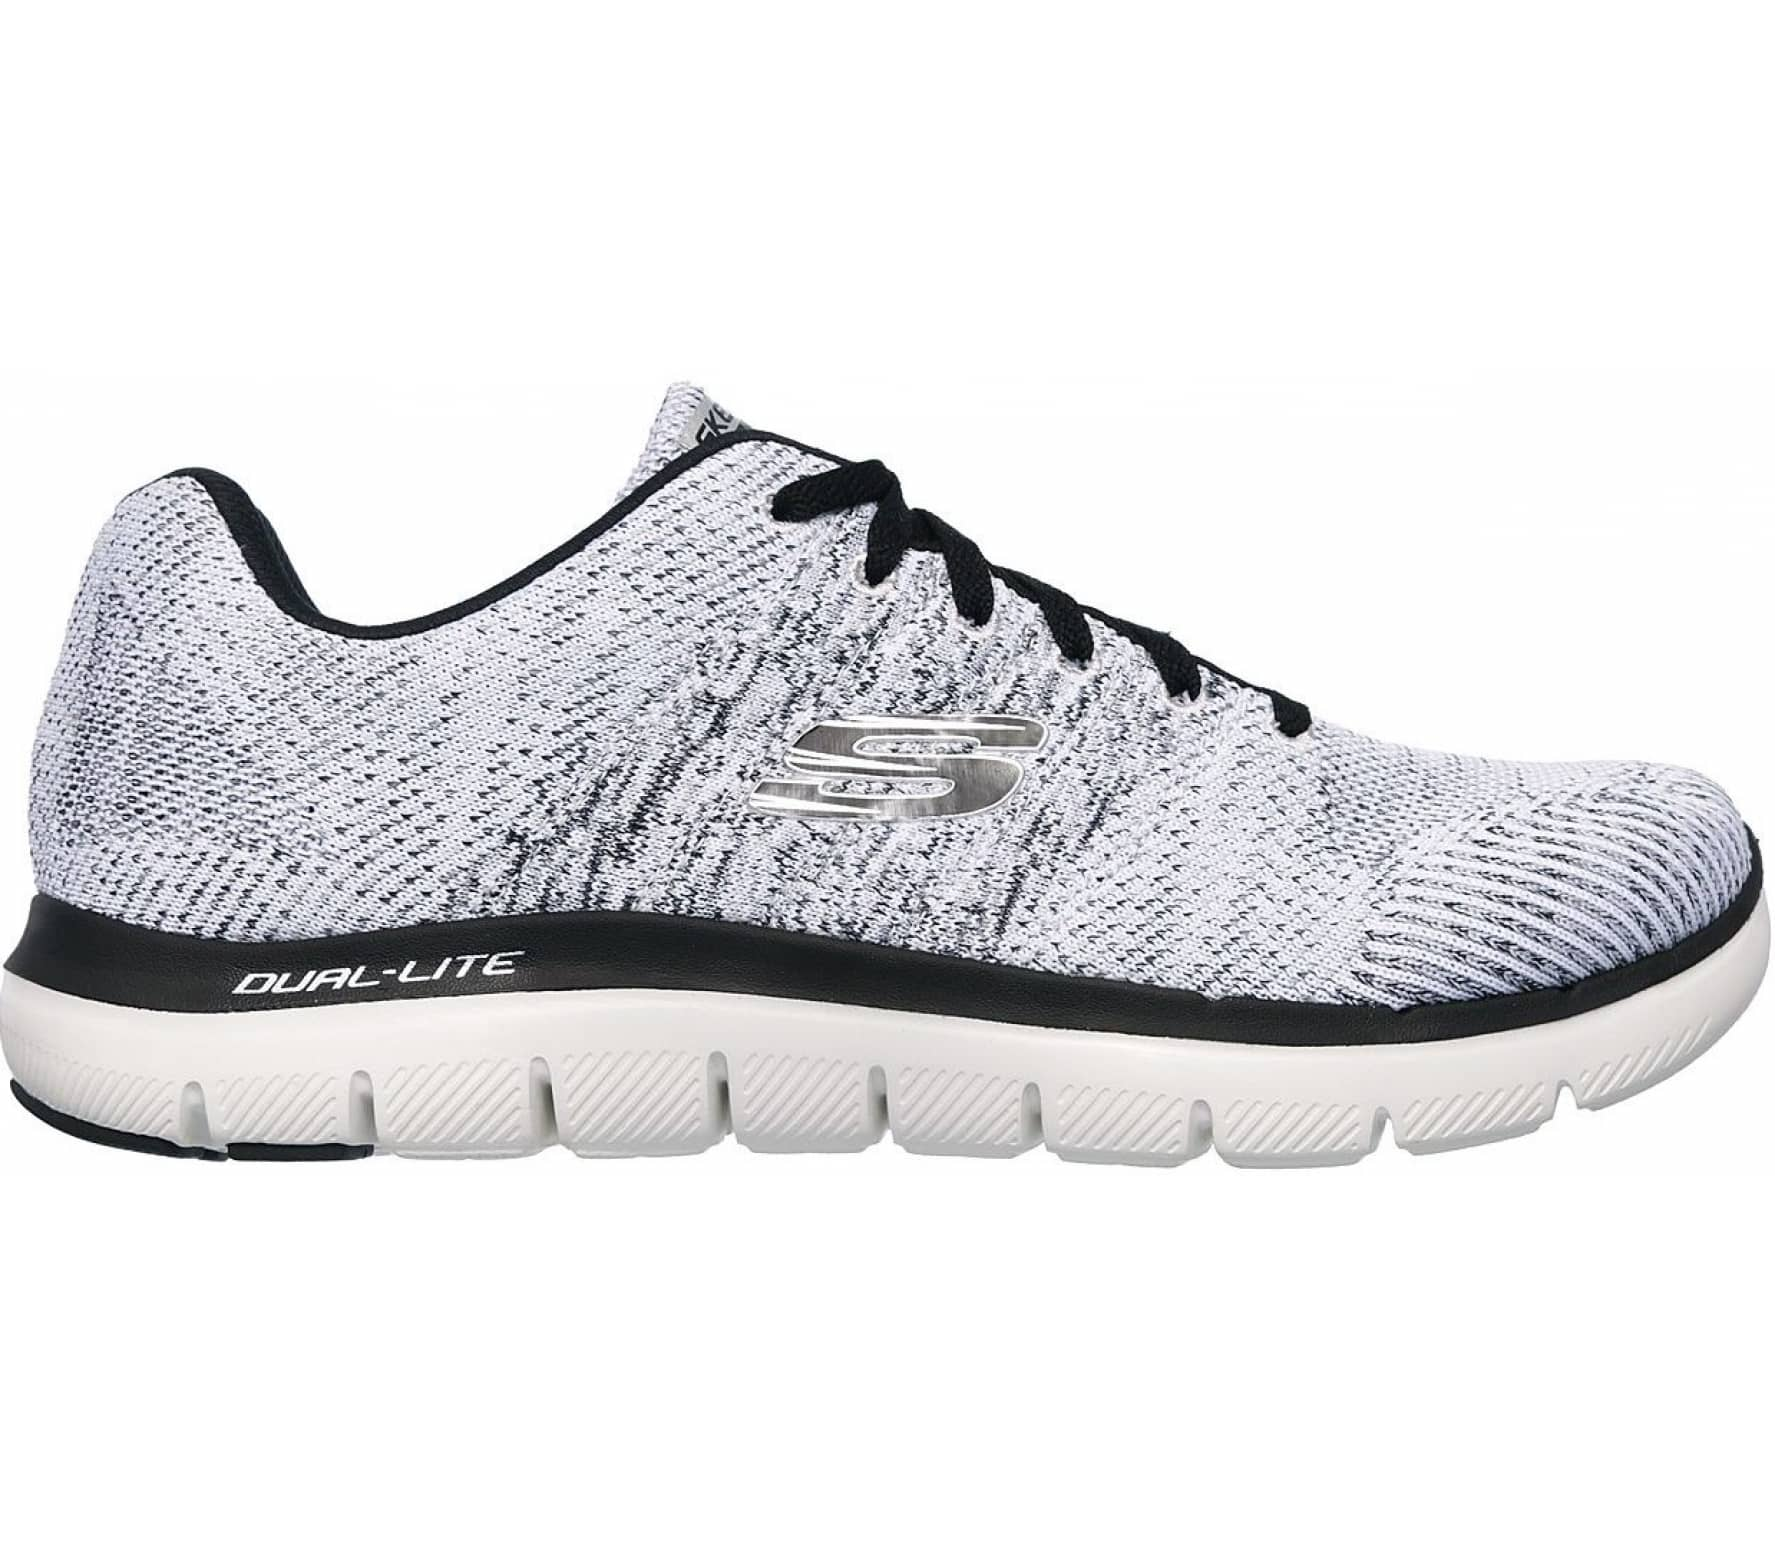 6f73eb8e0eec Skechers - Flex Advantage 2.0 Missing Link men s running shoes (white black)